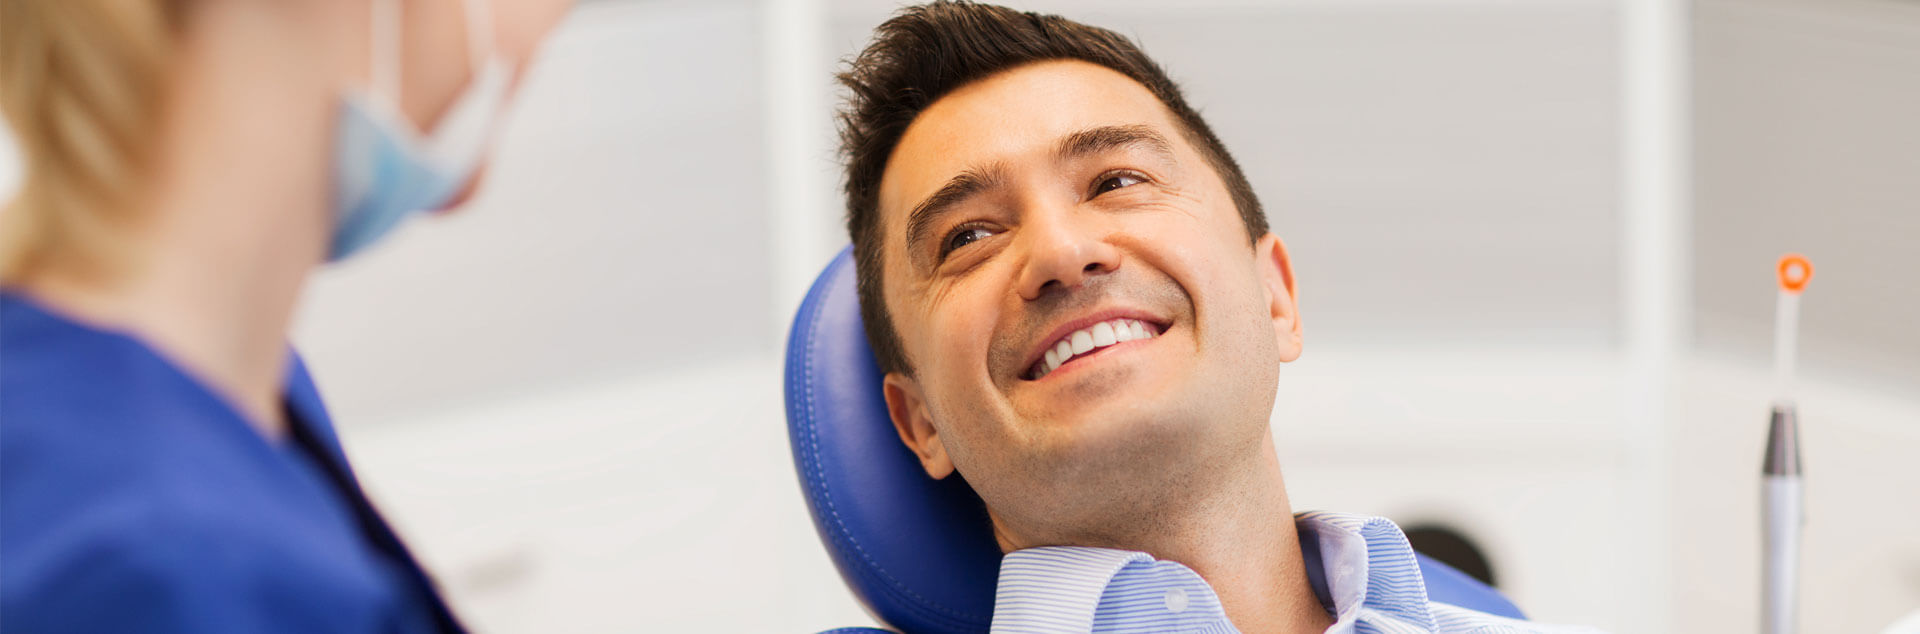 Young male patient smiling seated on dental chair about to receive preventative dentistry treatment